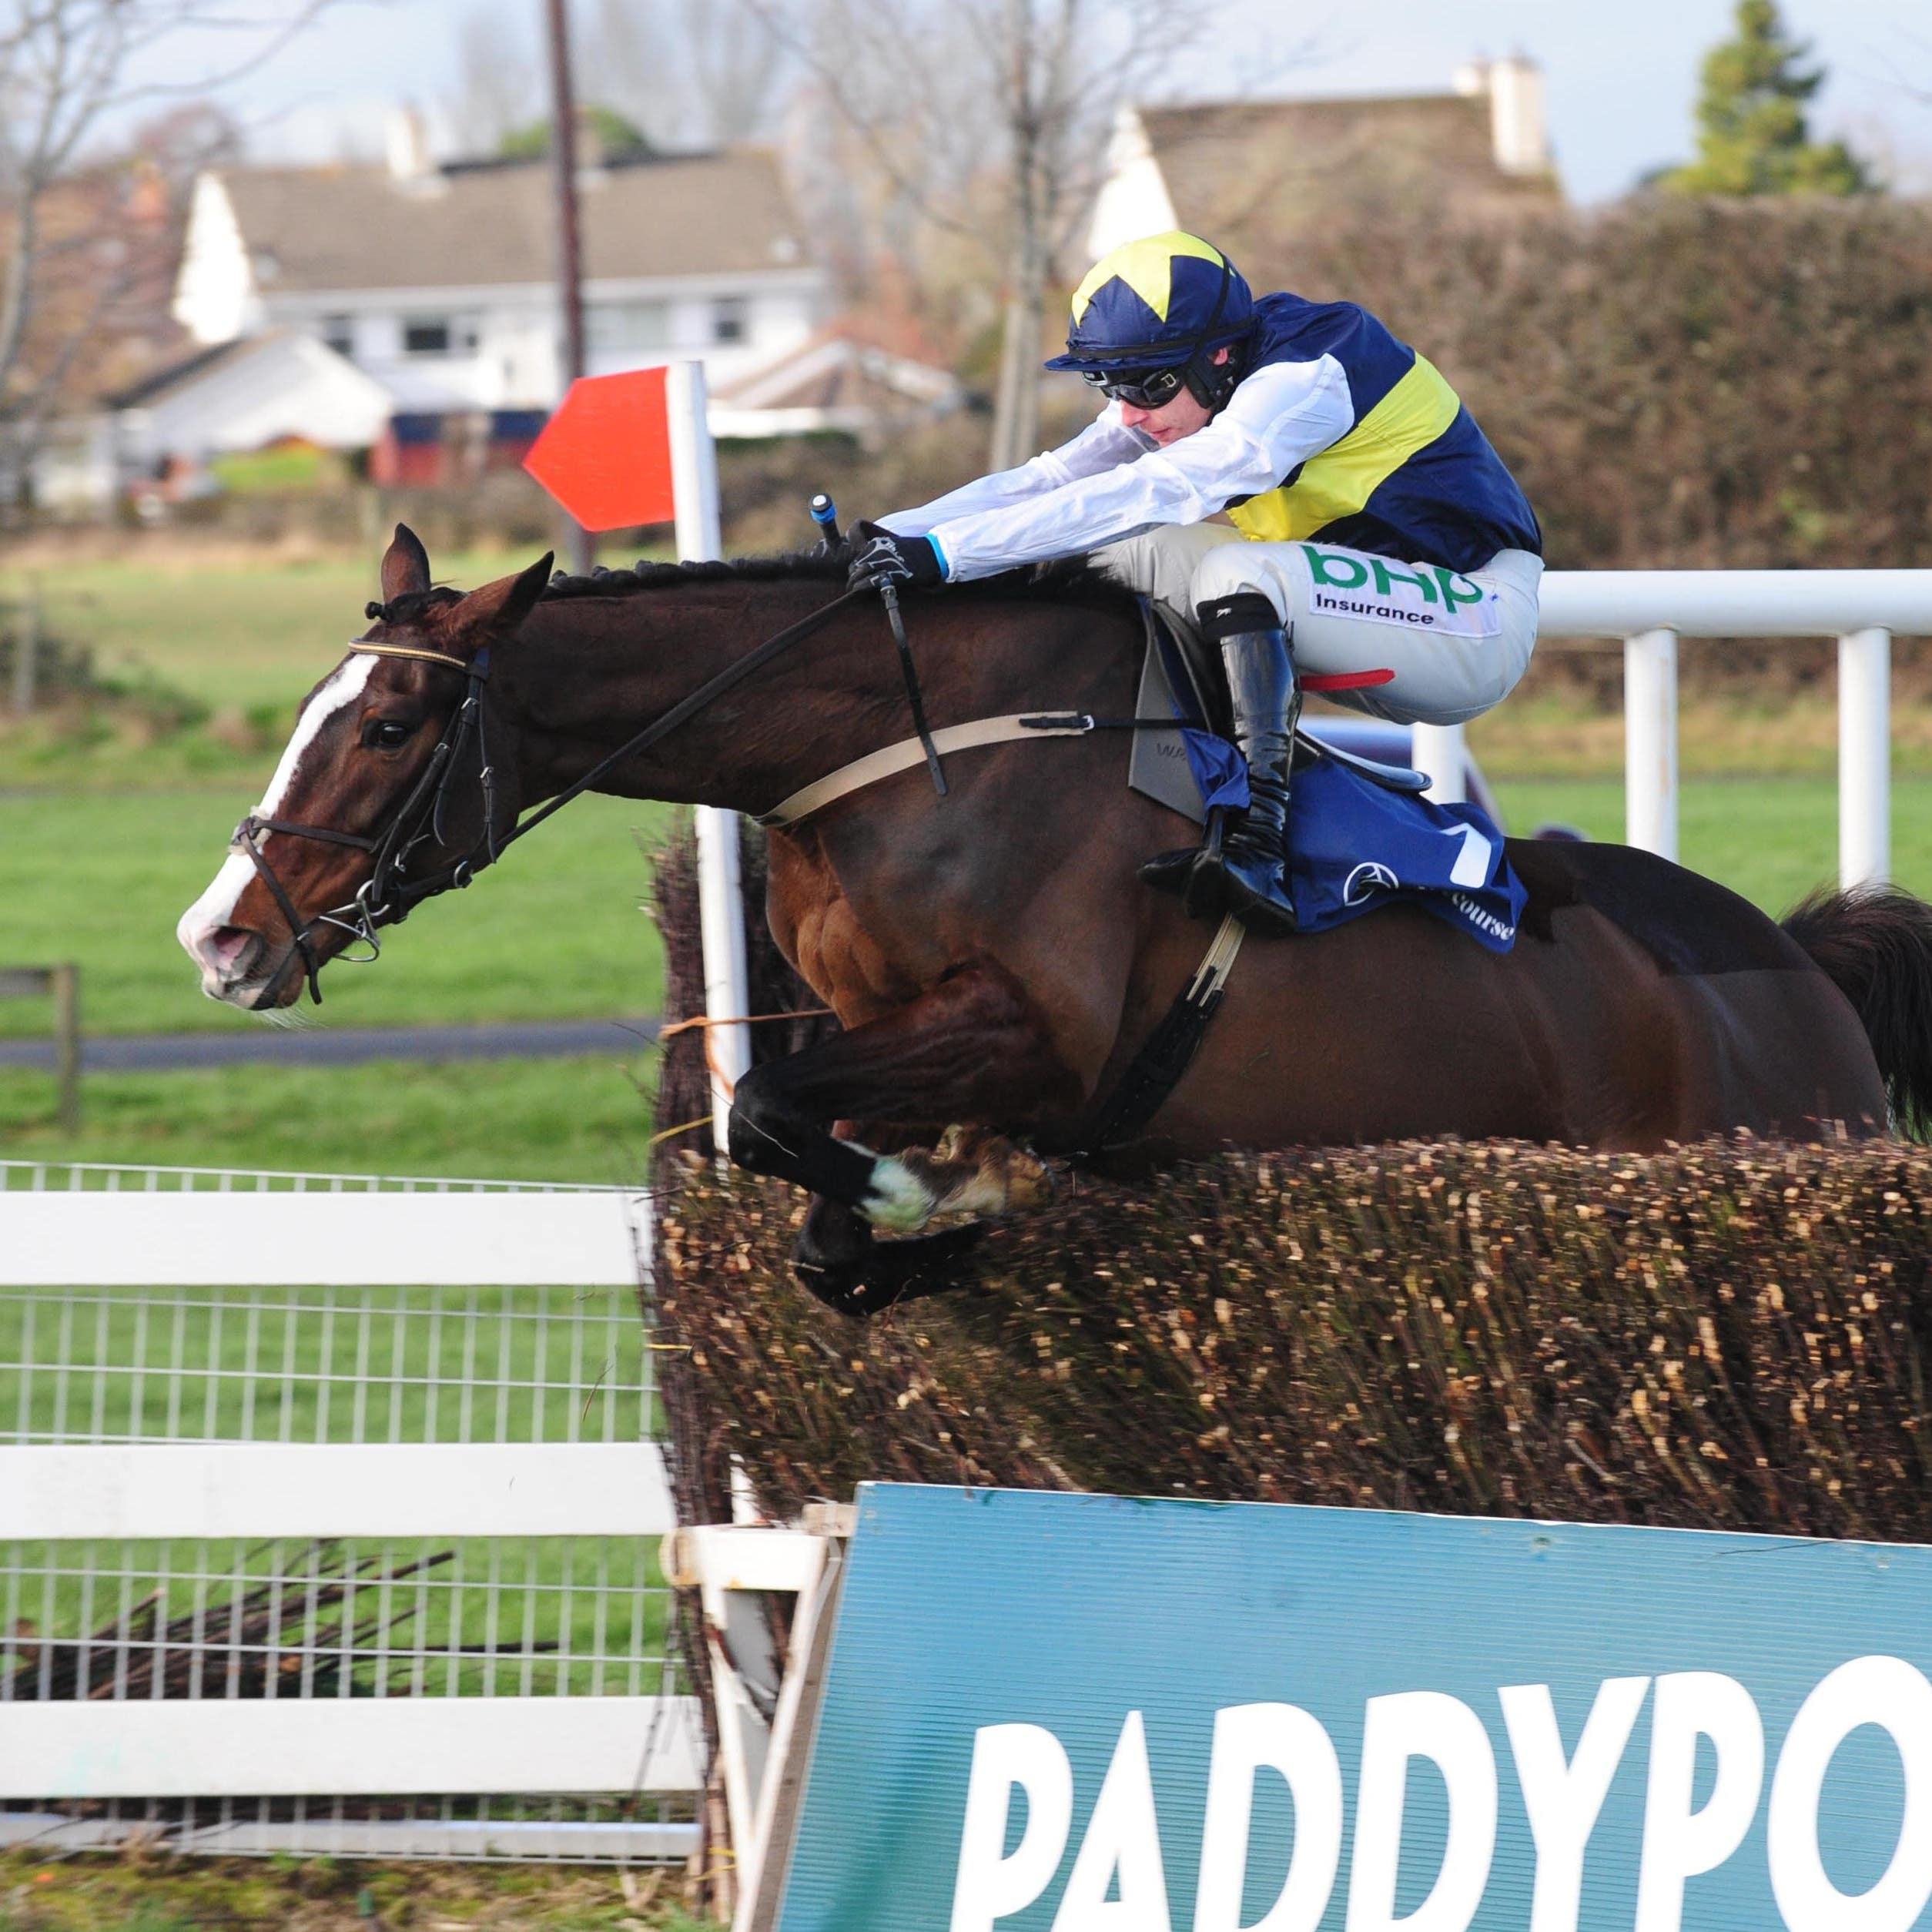 Pravalaguna and Paul Townend jump the last fence to win the BBA Ireland Opera Hat Mares Chase at Naas